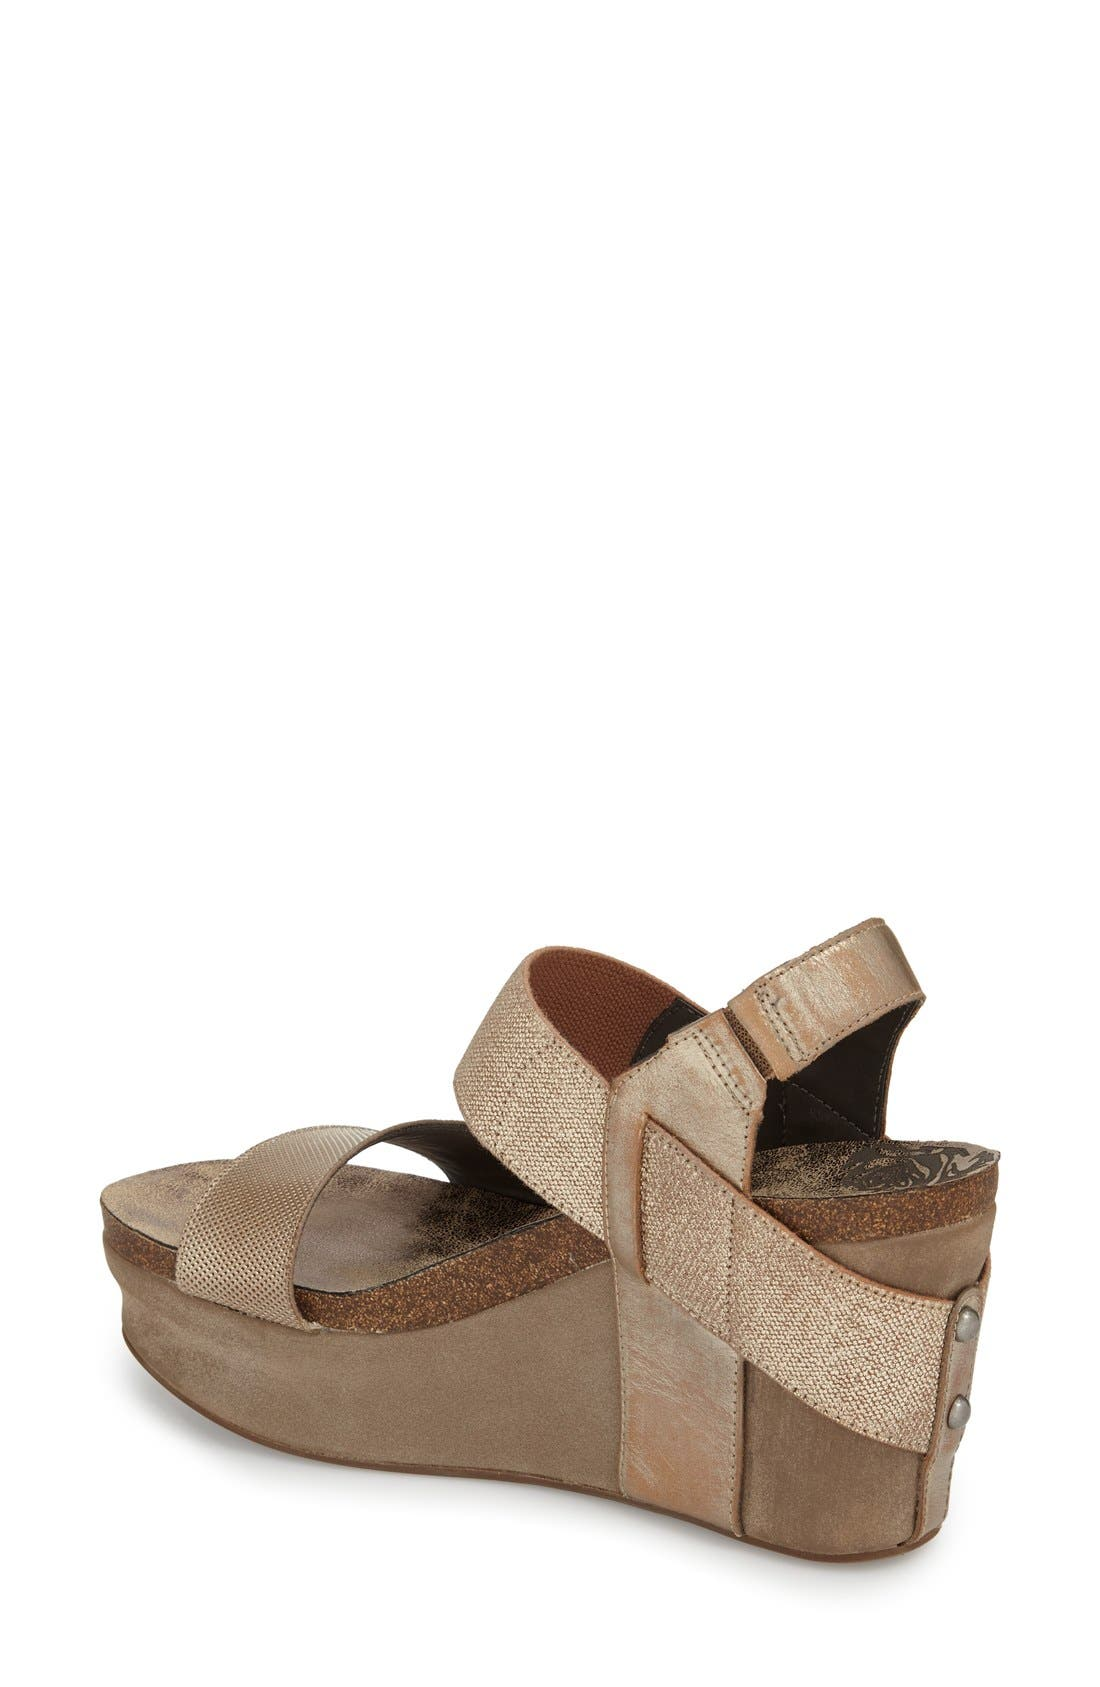 'Bushnell' Wedge Sandal,                             Alternate thumbnail 15, color,